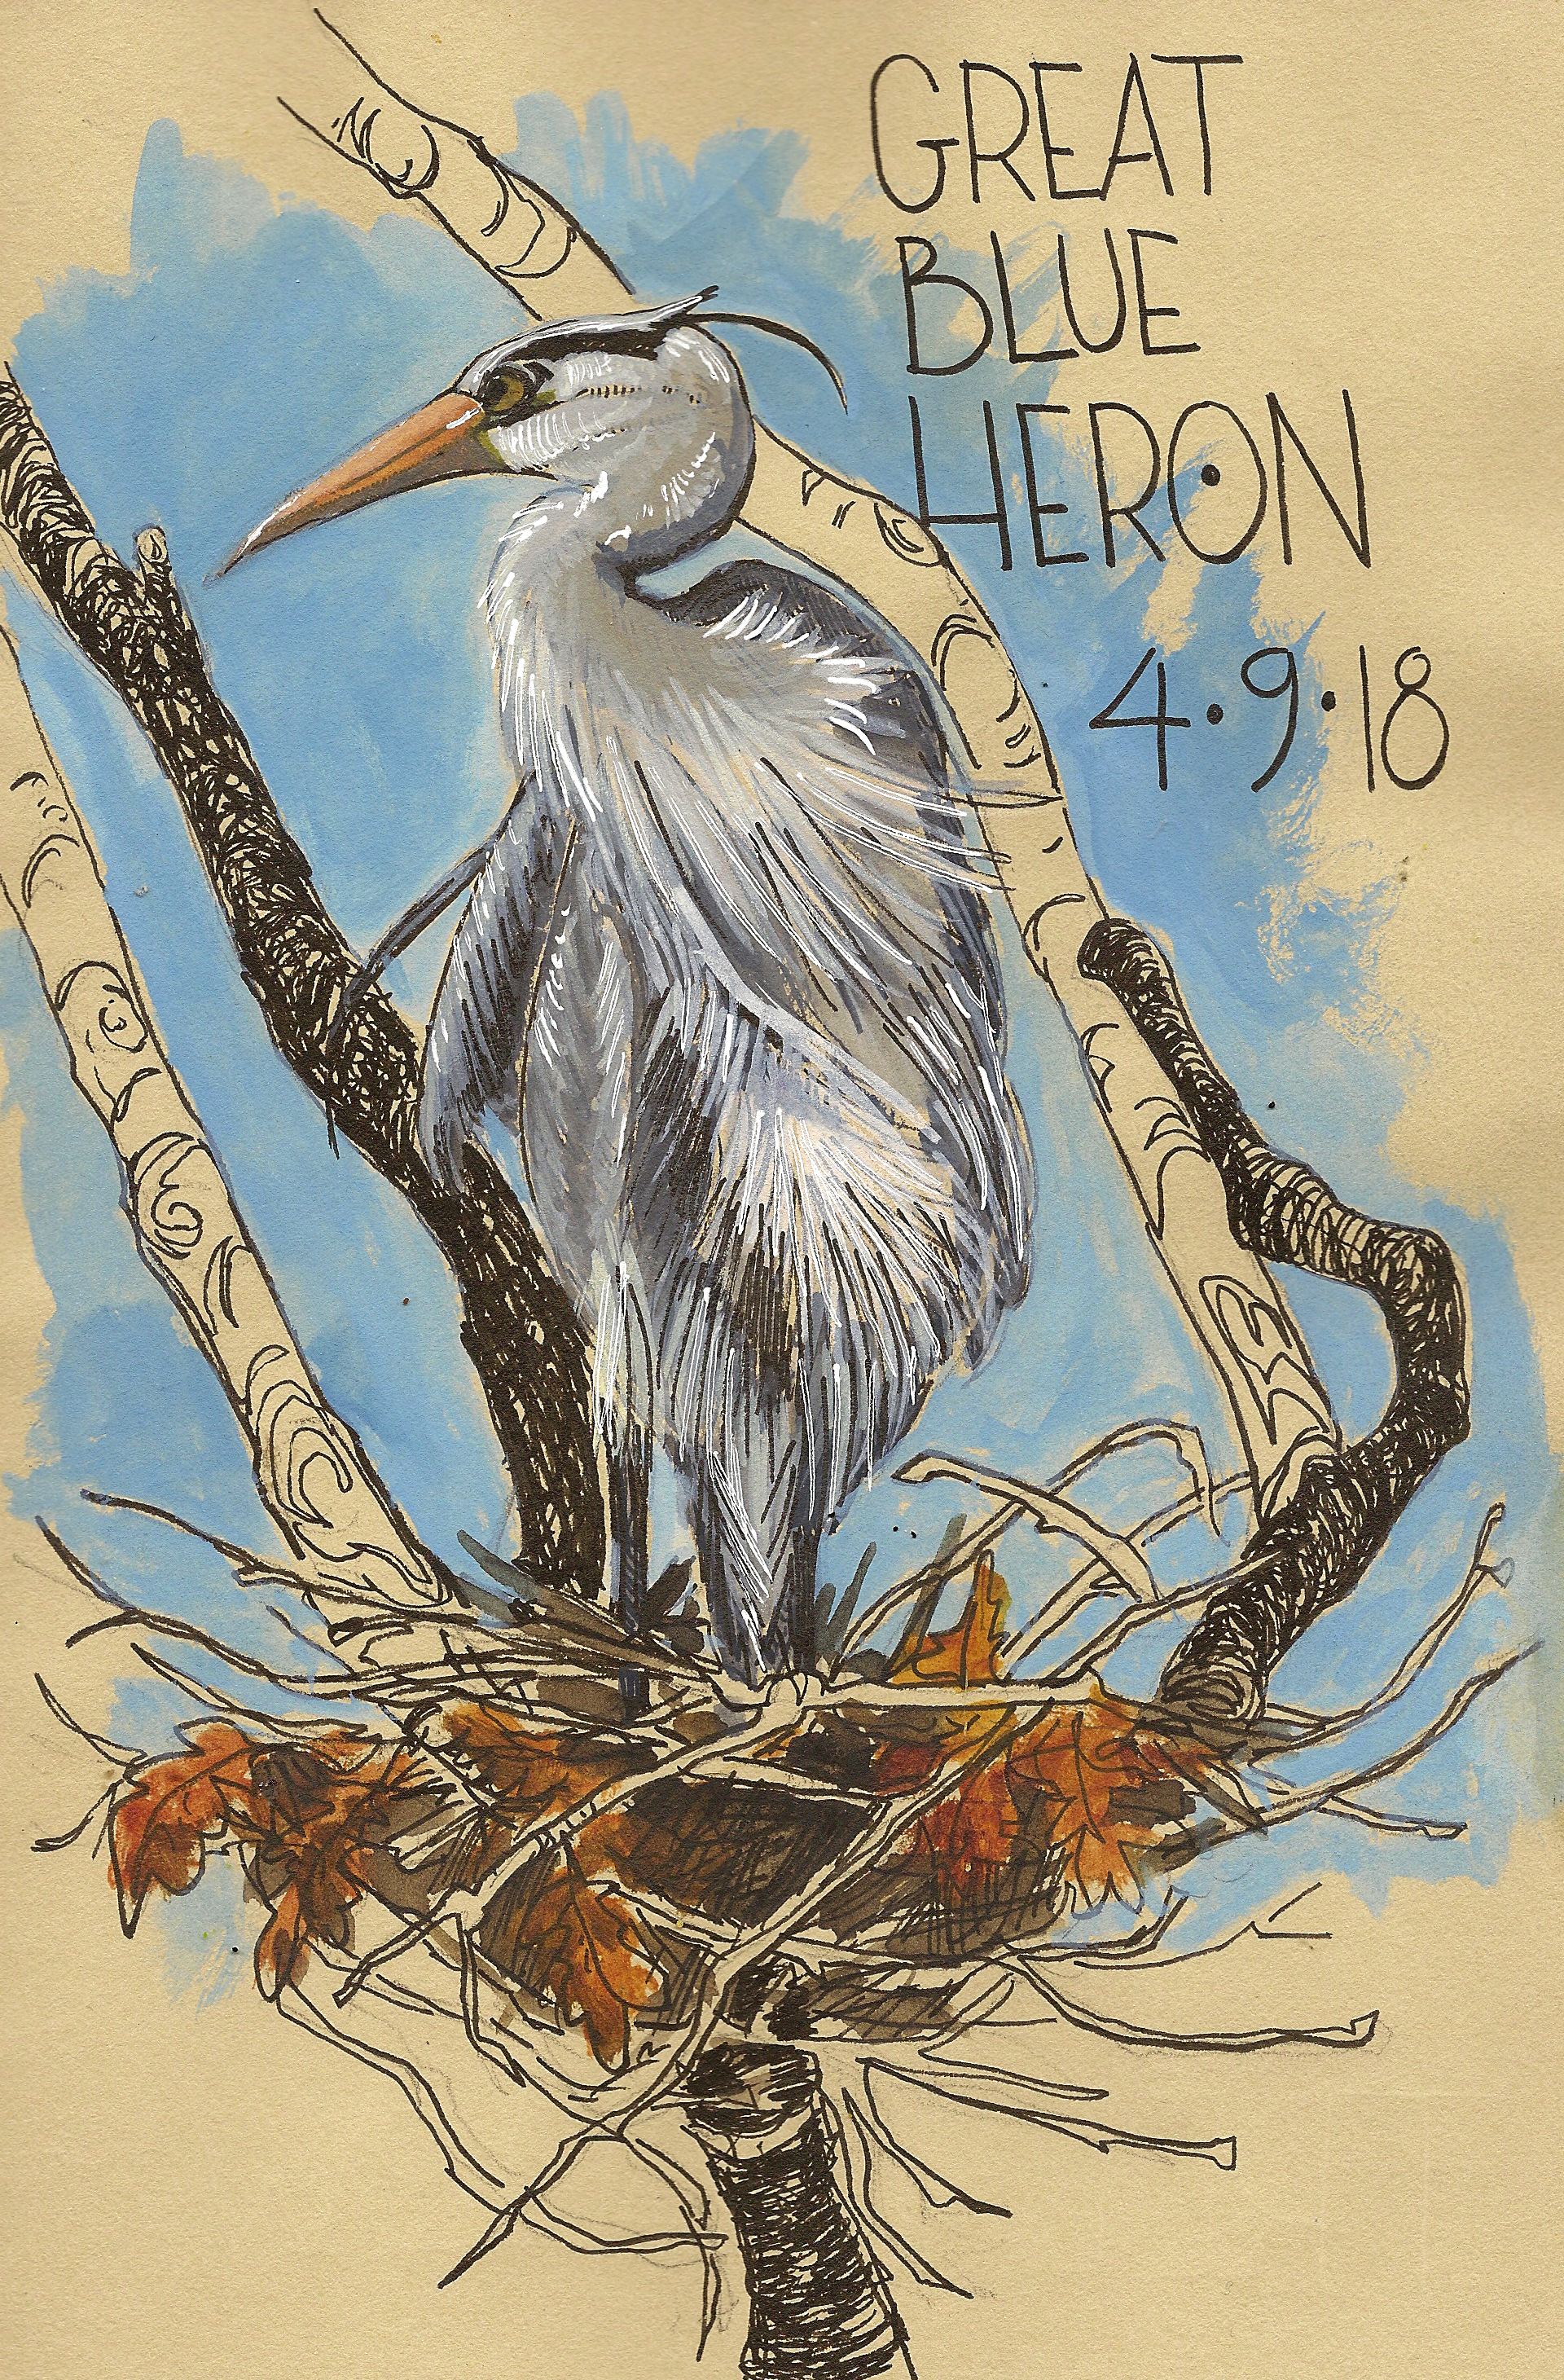 <b>Great Blue Heron</b>